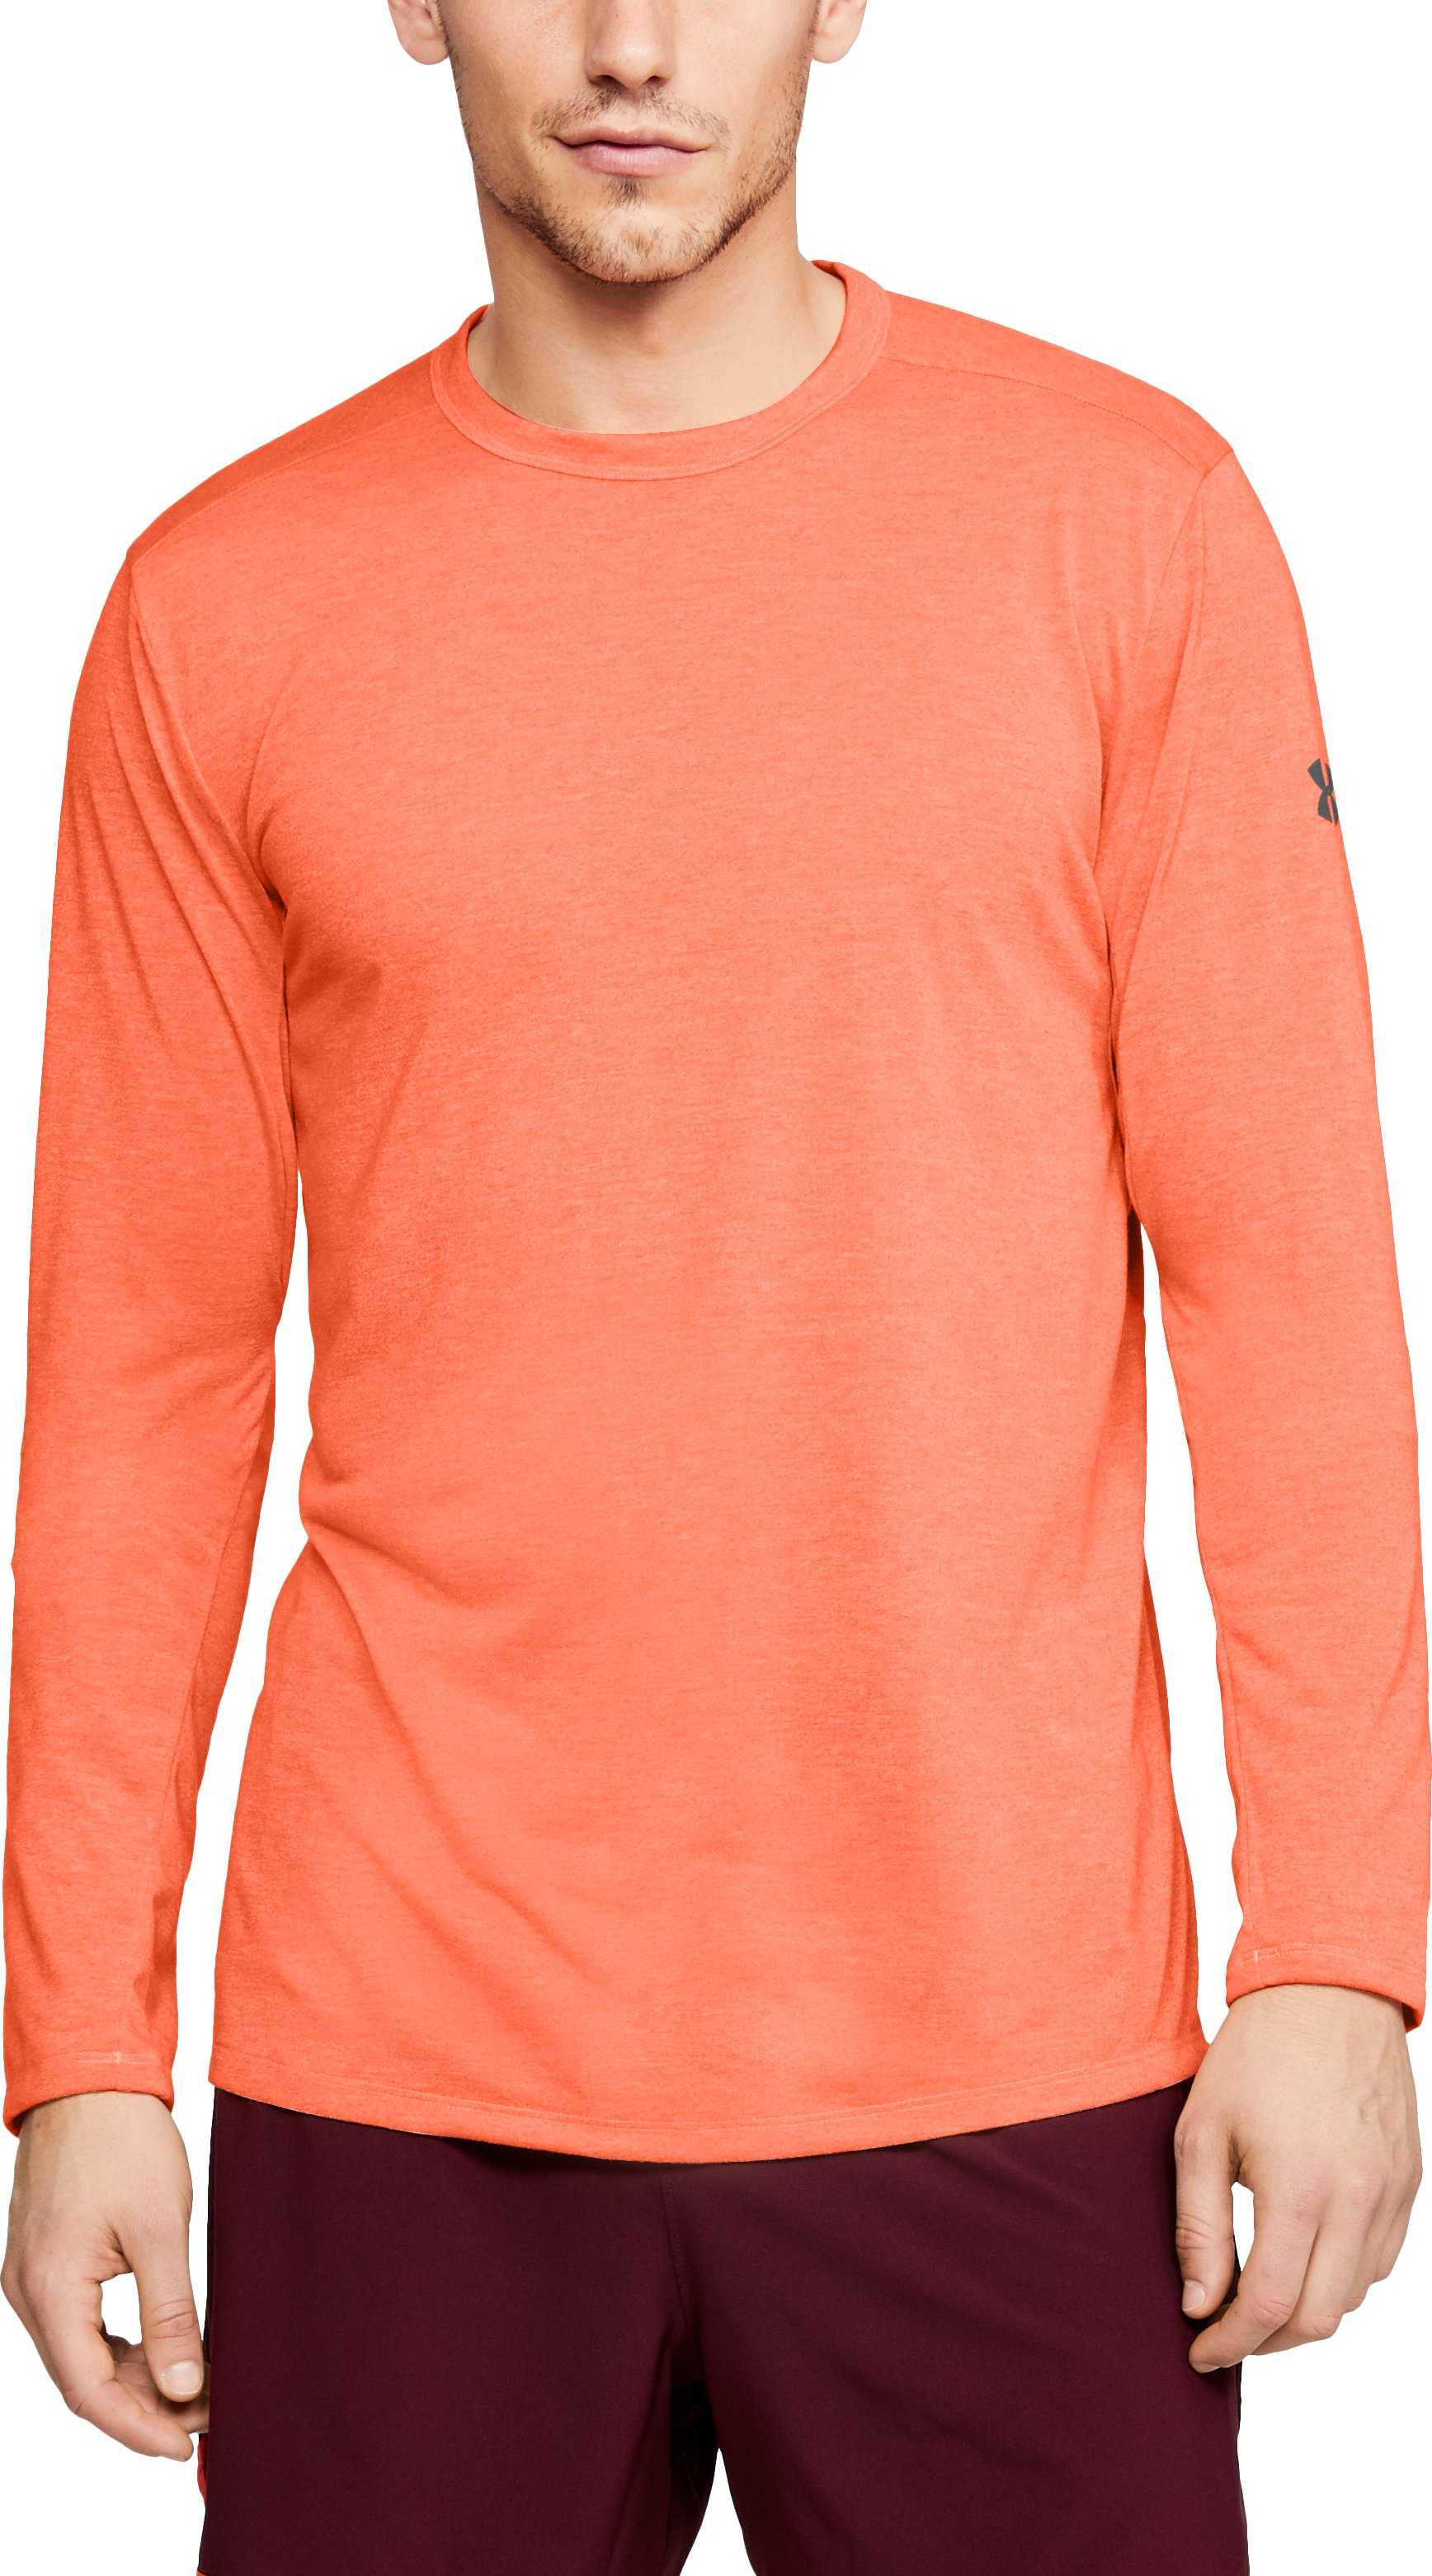 Threadborne LS, MAGMA ORANGE, zoomed